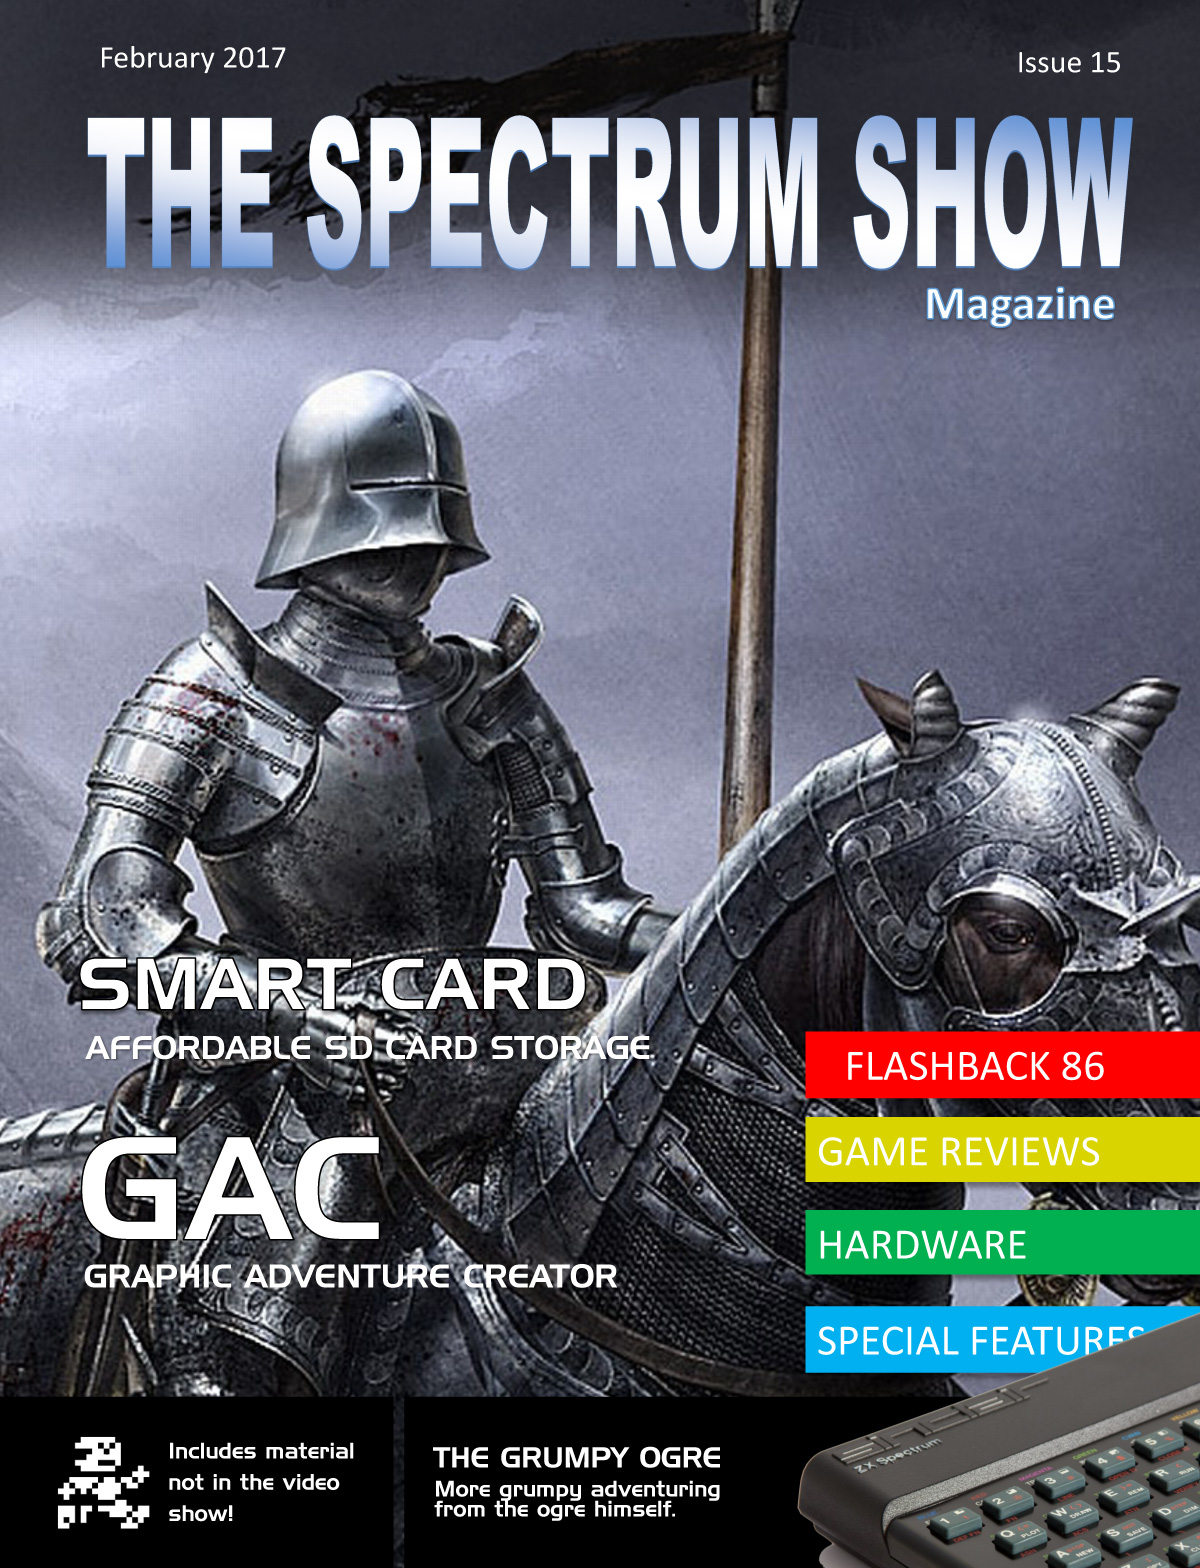 The Spectrum Show Magazine no 15